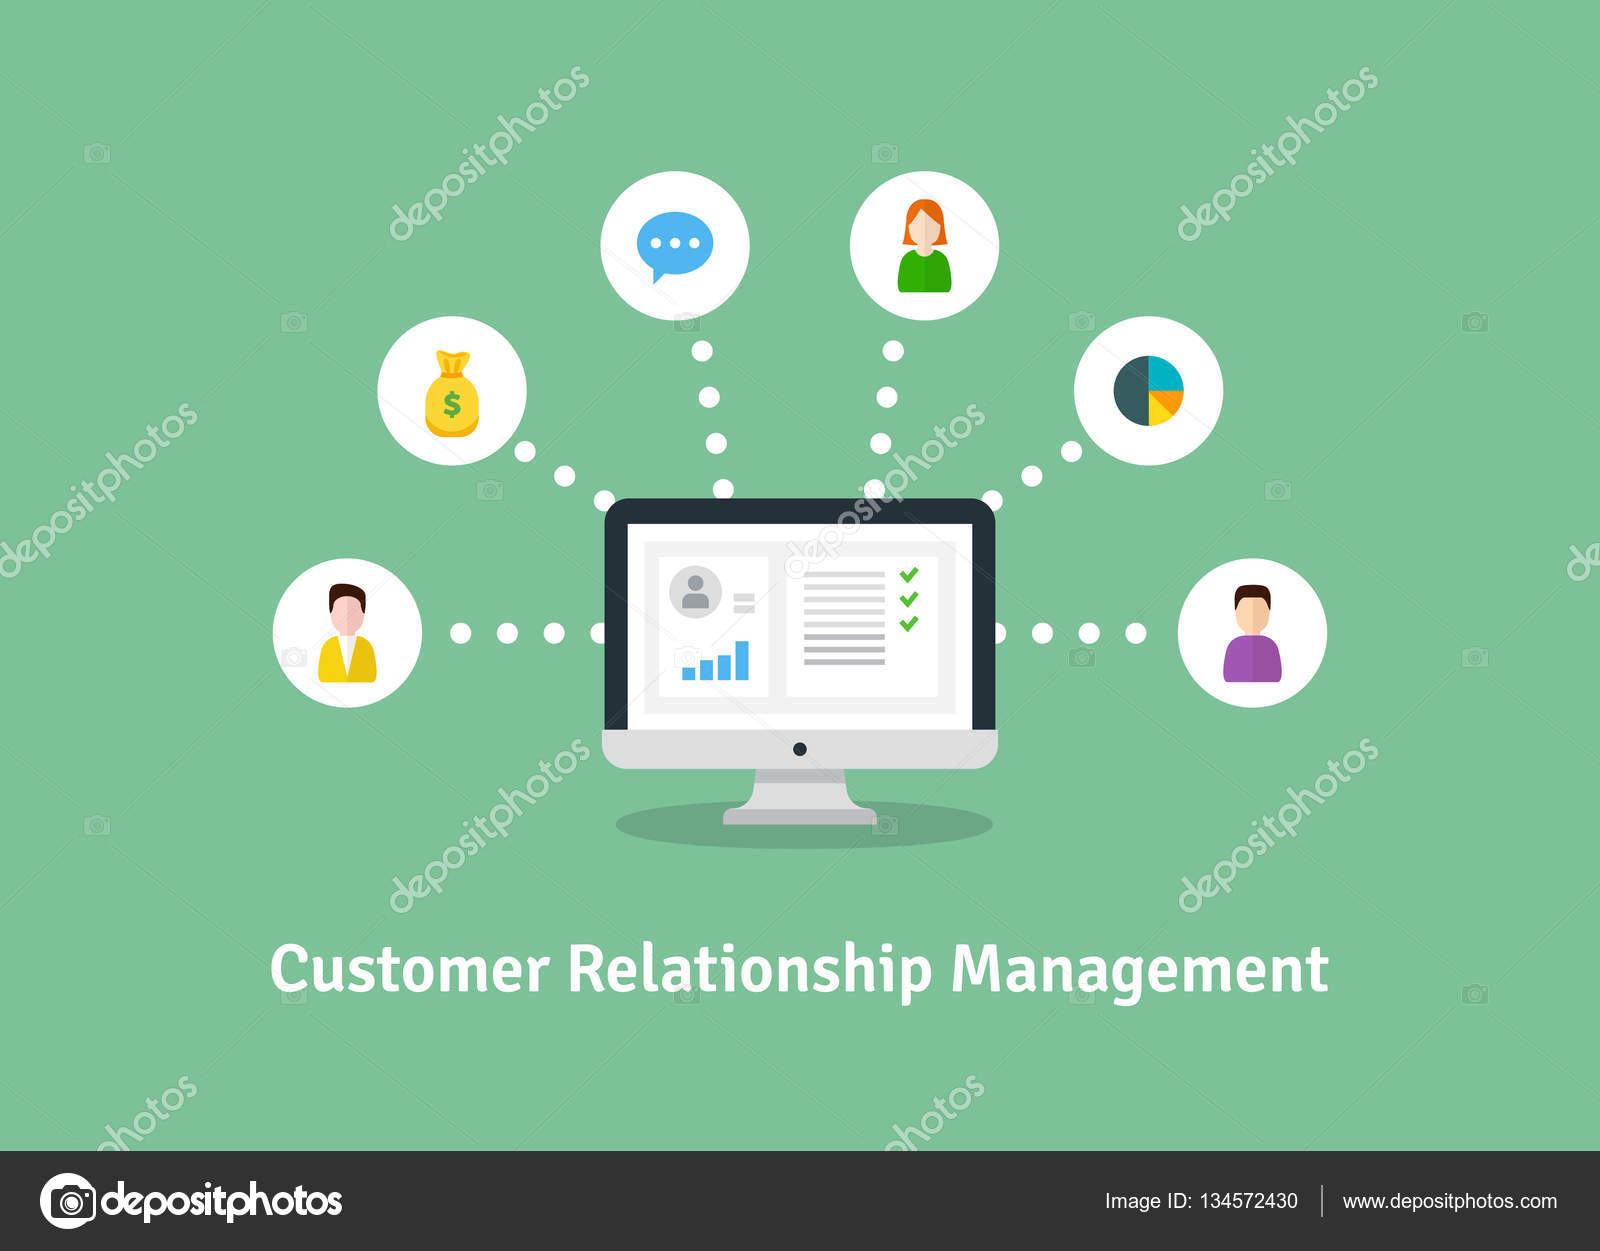 Customer relationship management - illustration photo